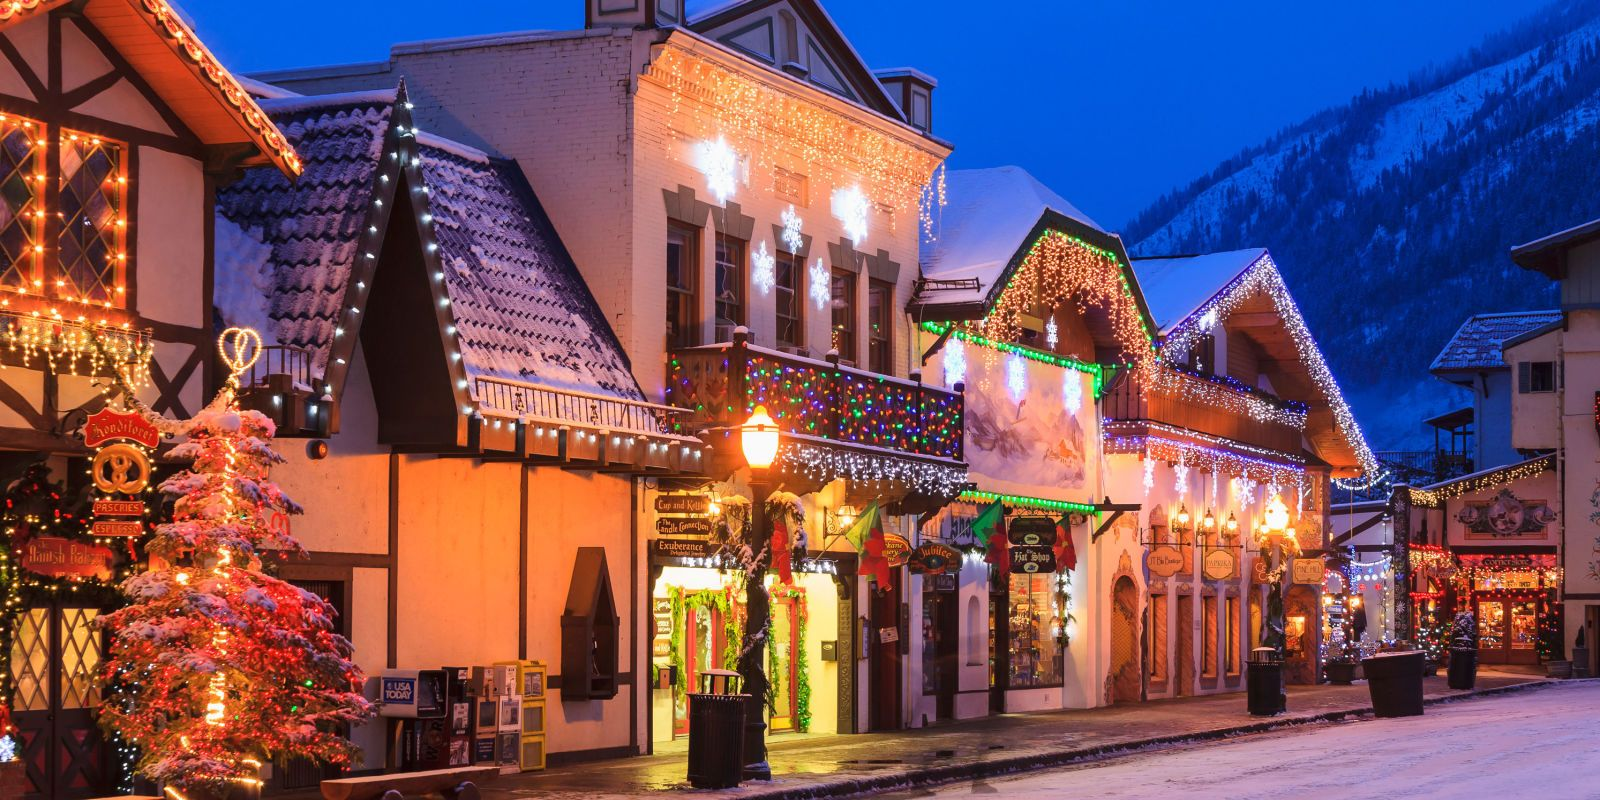 These Magical Christmas Towns Need to Be on Your Holiday